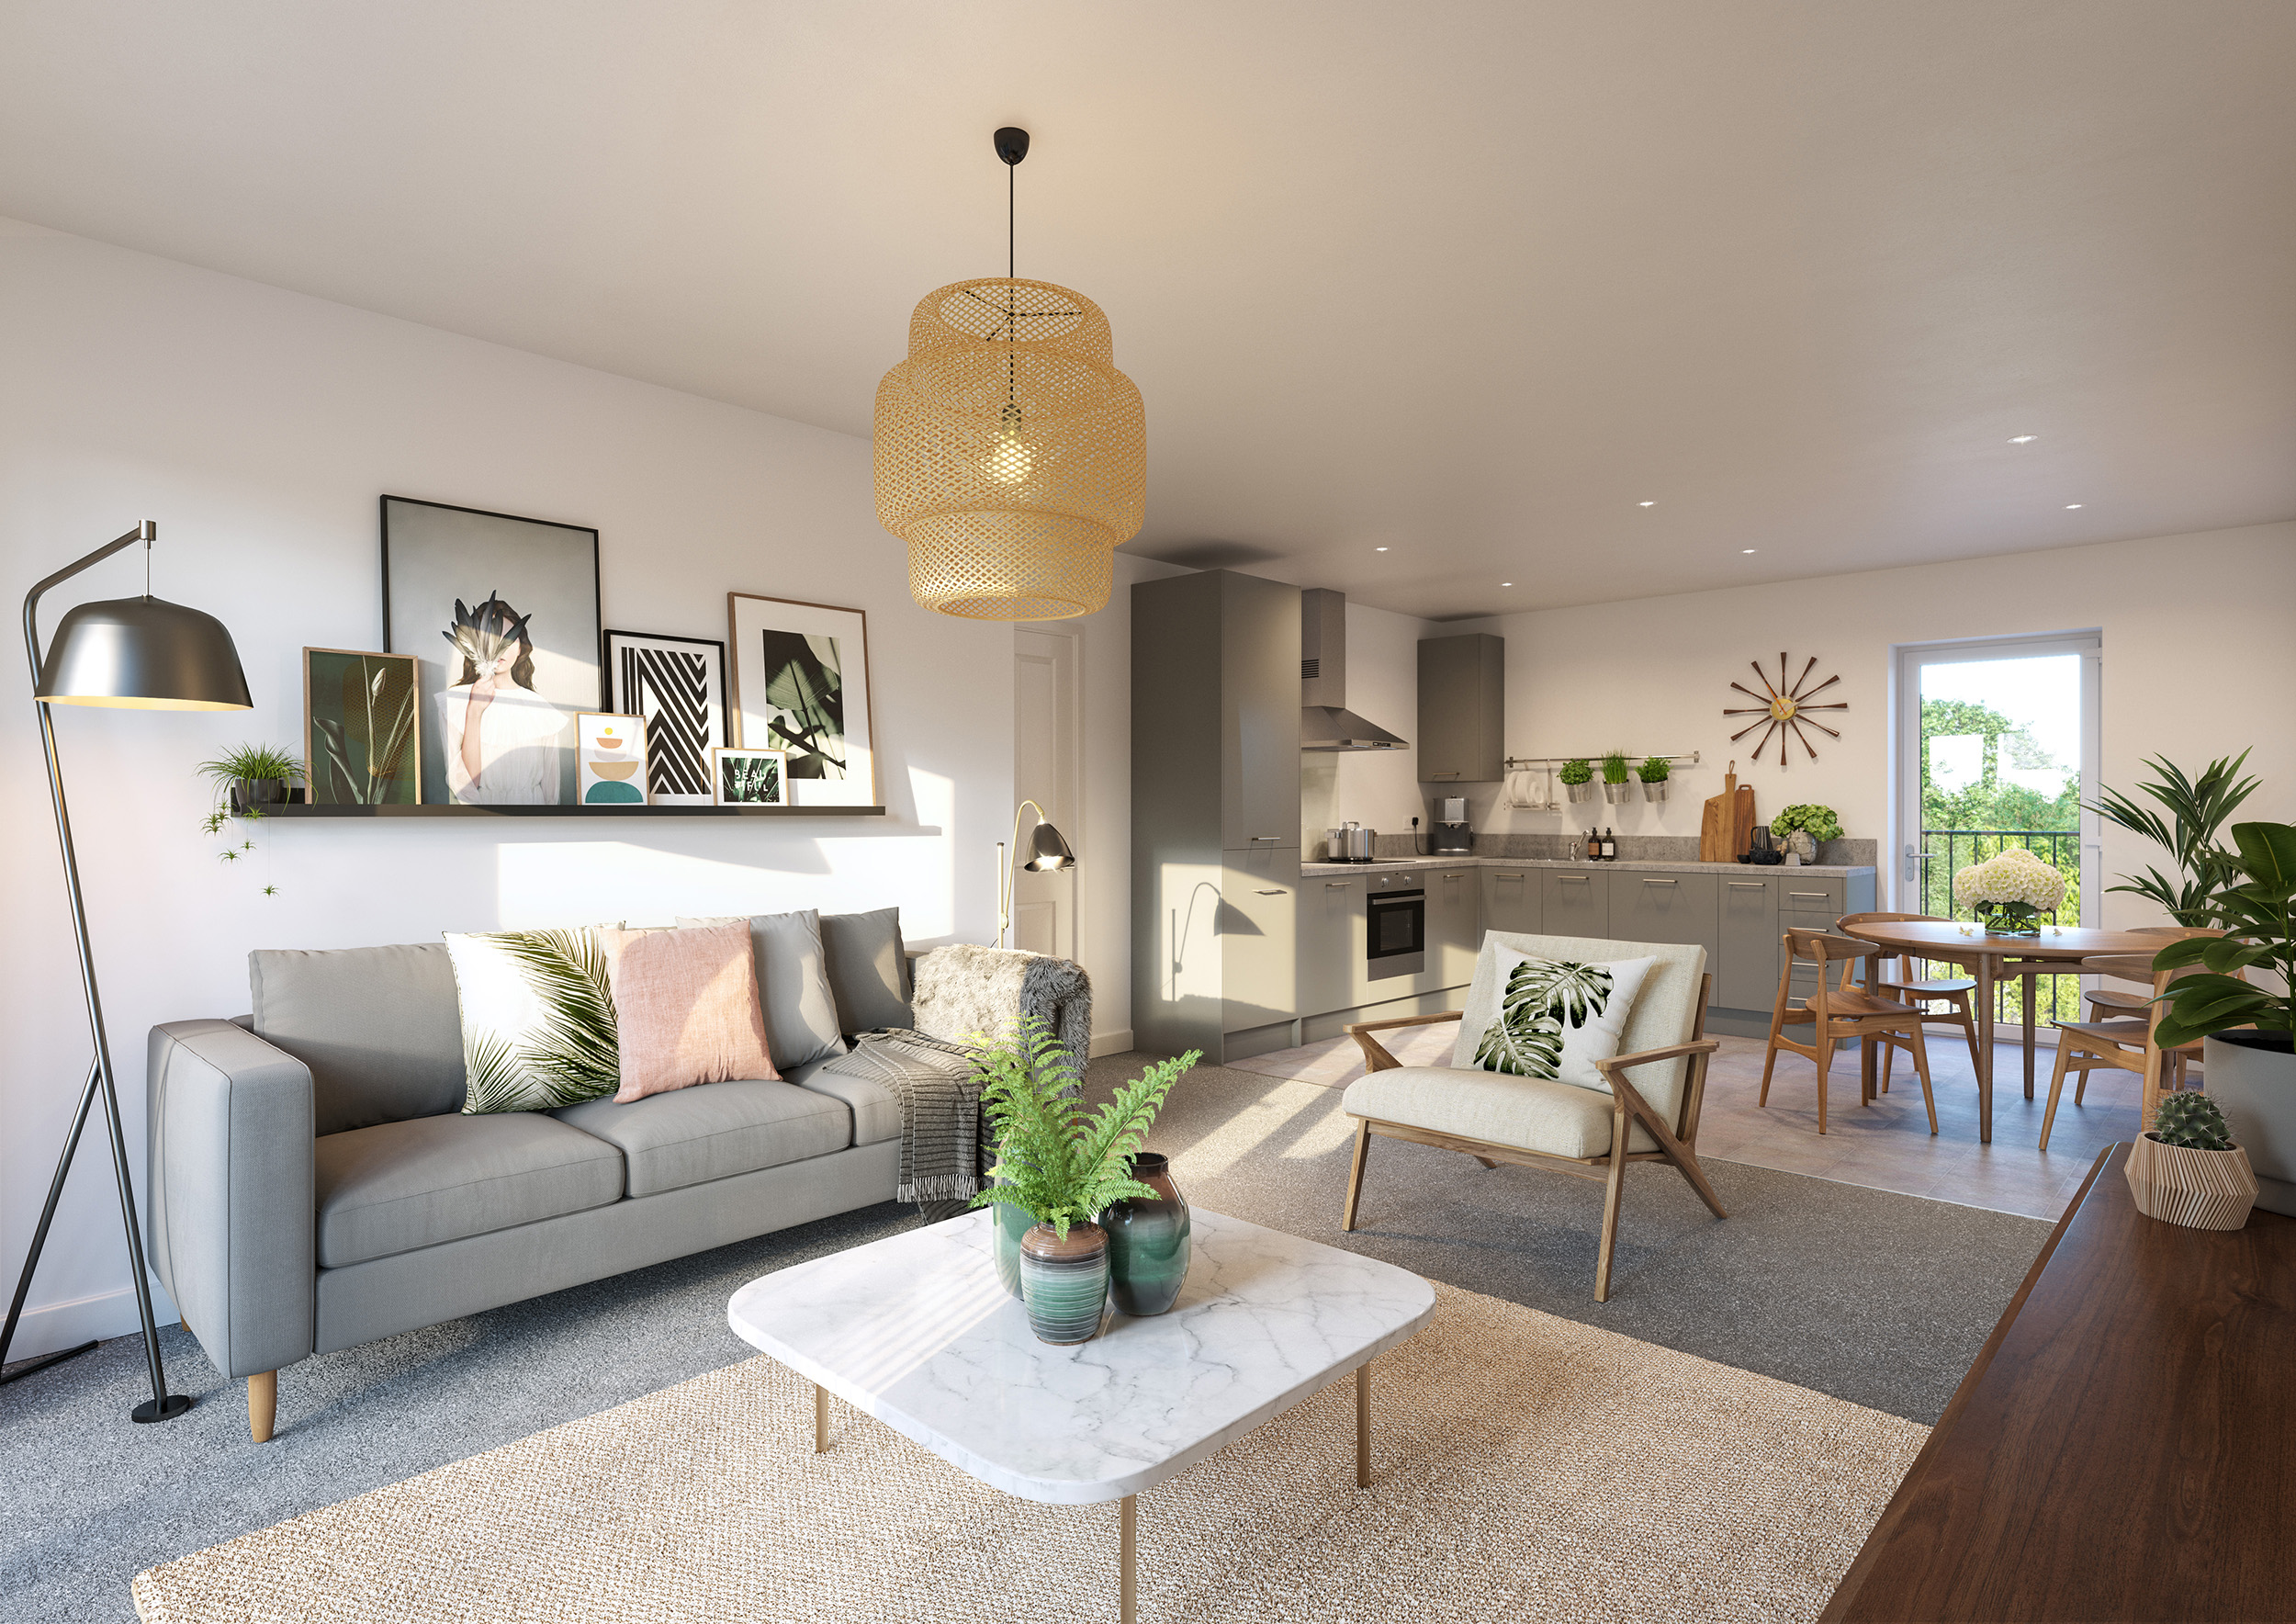 Beautiful 2 bedroom apartments available now at Ebbsfleet Cross, from just £102,000 for 40% equity share.